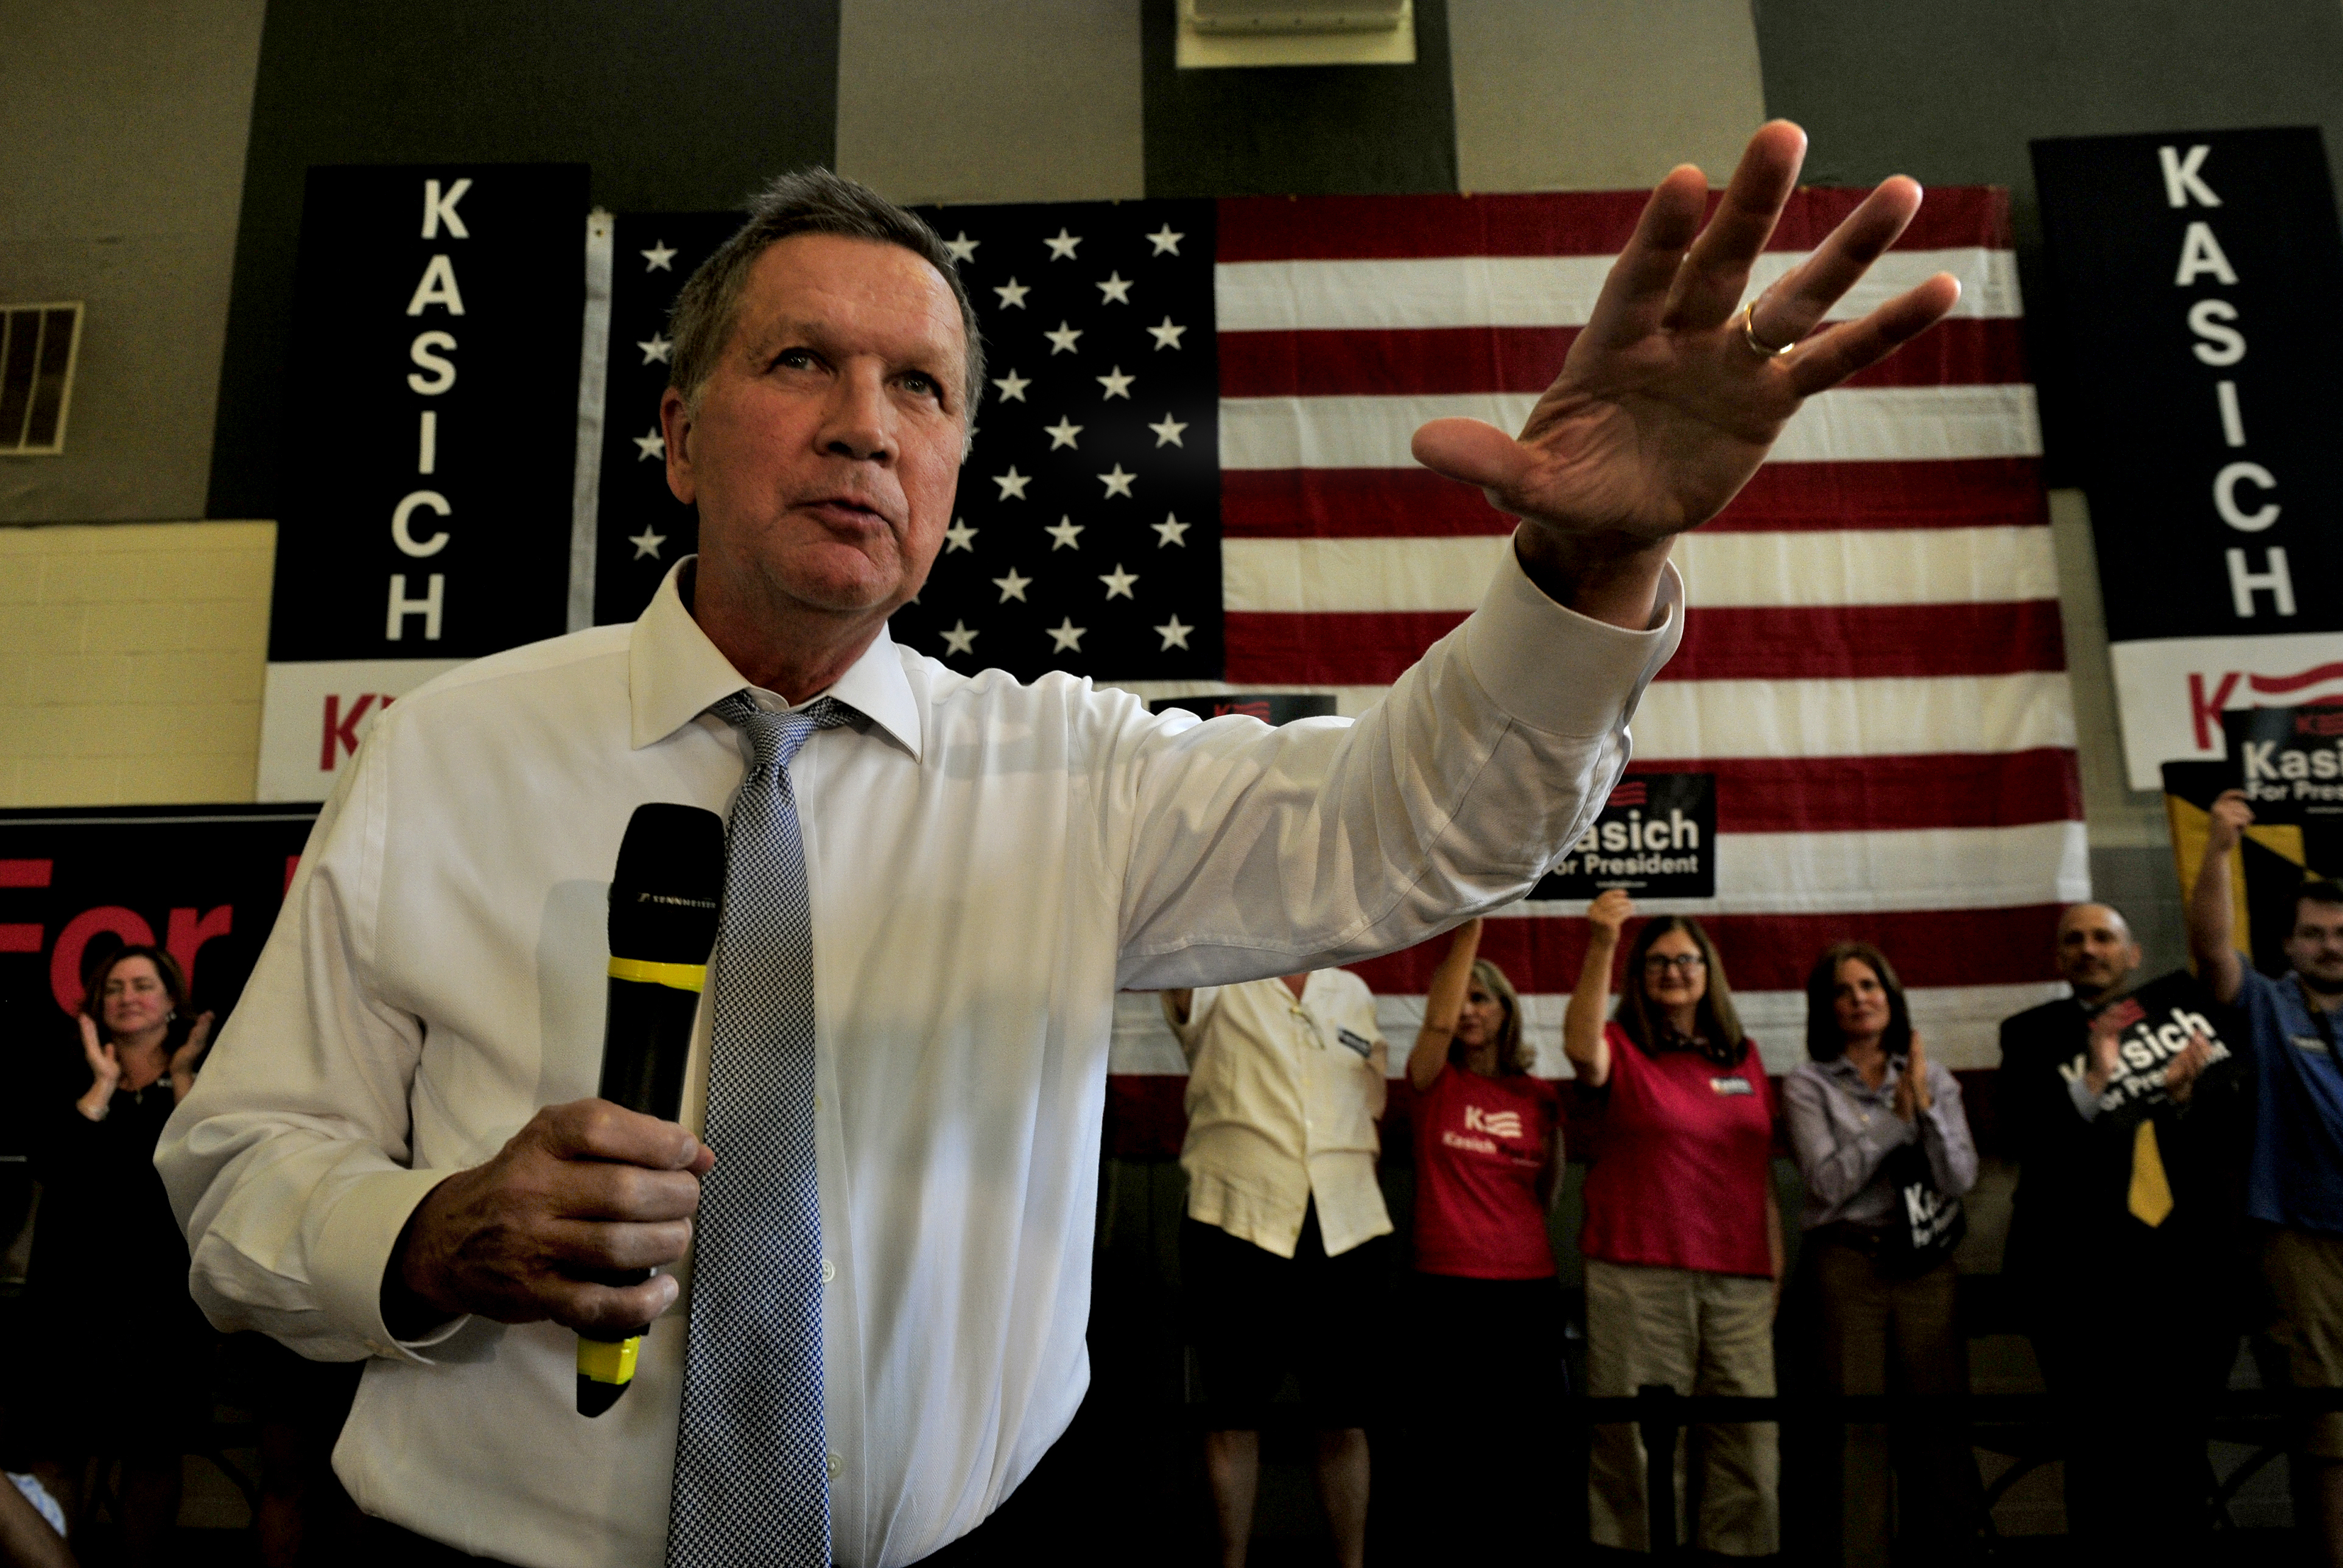 John Kasich waves to a cheering crowd at the start of his town hall rally in Rockville, Maryland on April 25.